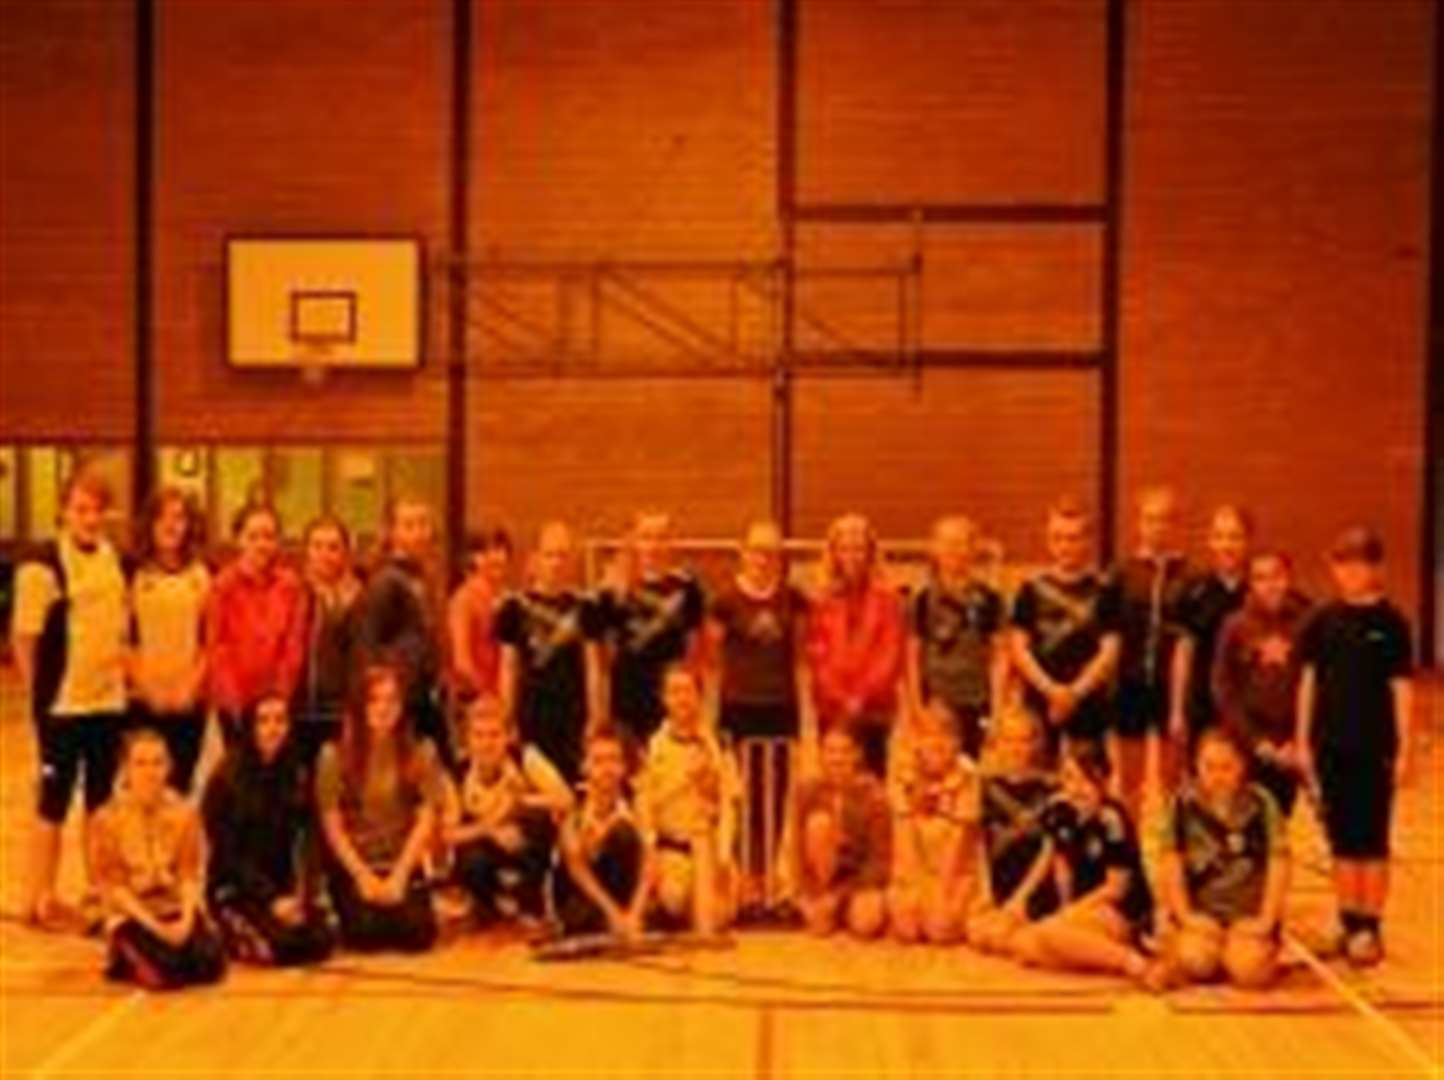 Moray-wide indoor cricket competition launched in Forres